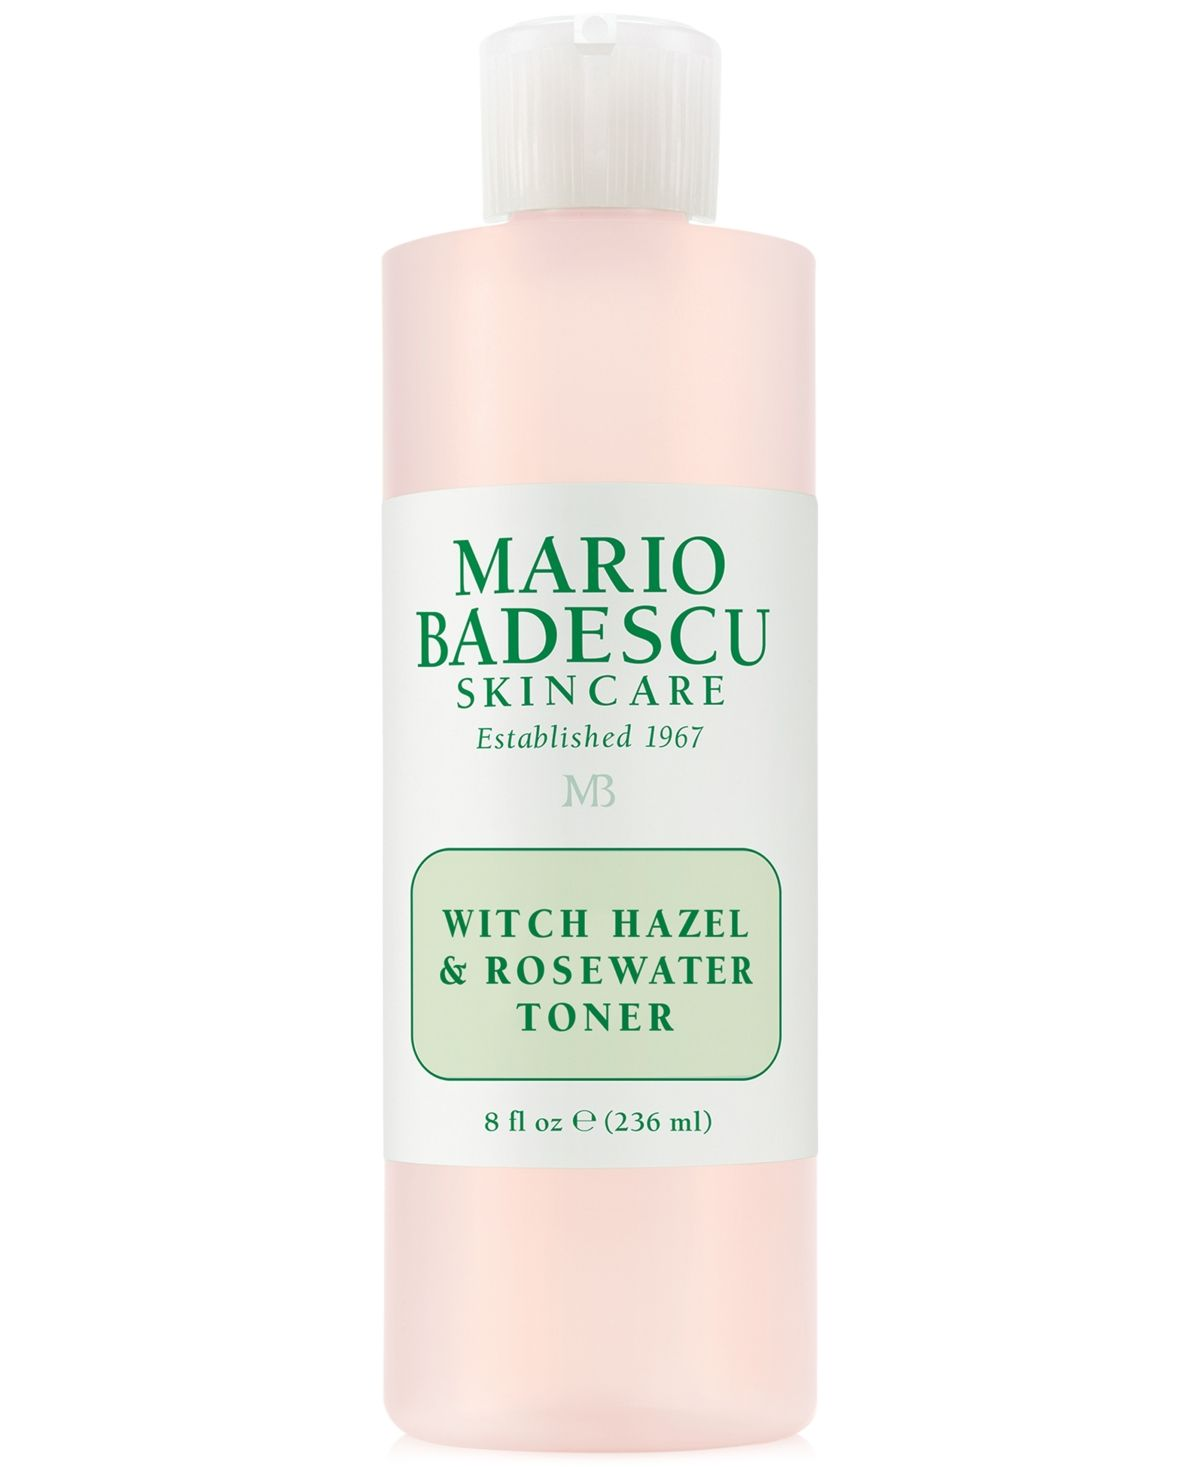 Mario Badescu Witch Hazel Rosewater Toner 8 Oz Reviews Skin Care Beauty Macy S In 2020 Rose Water Toner Skin Care Beauty Skin Care